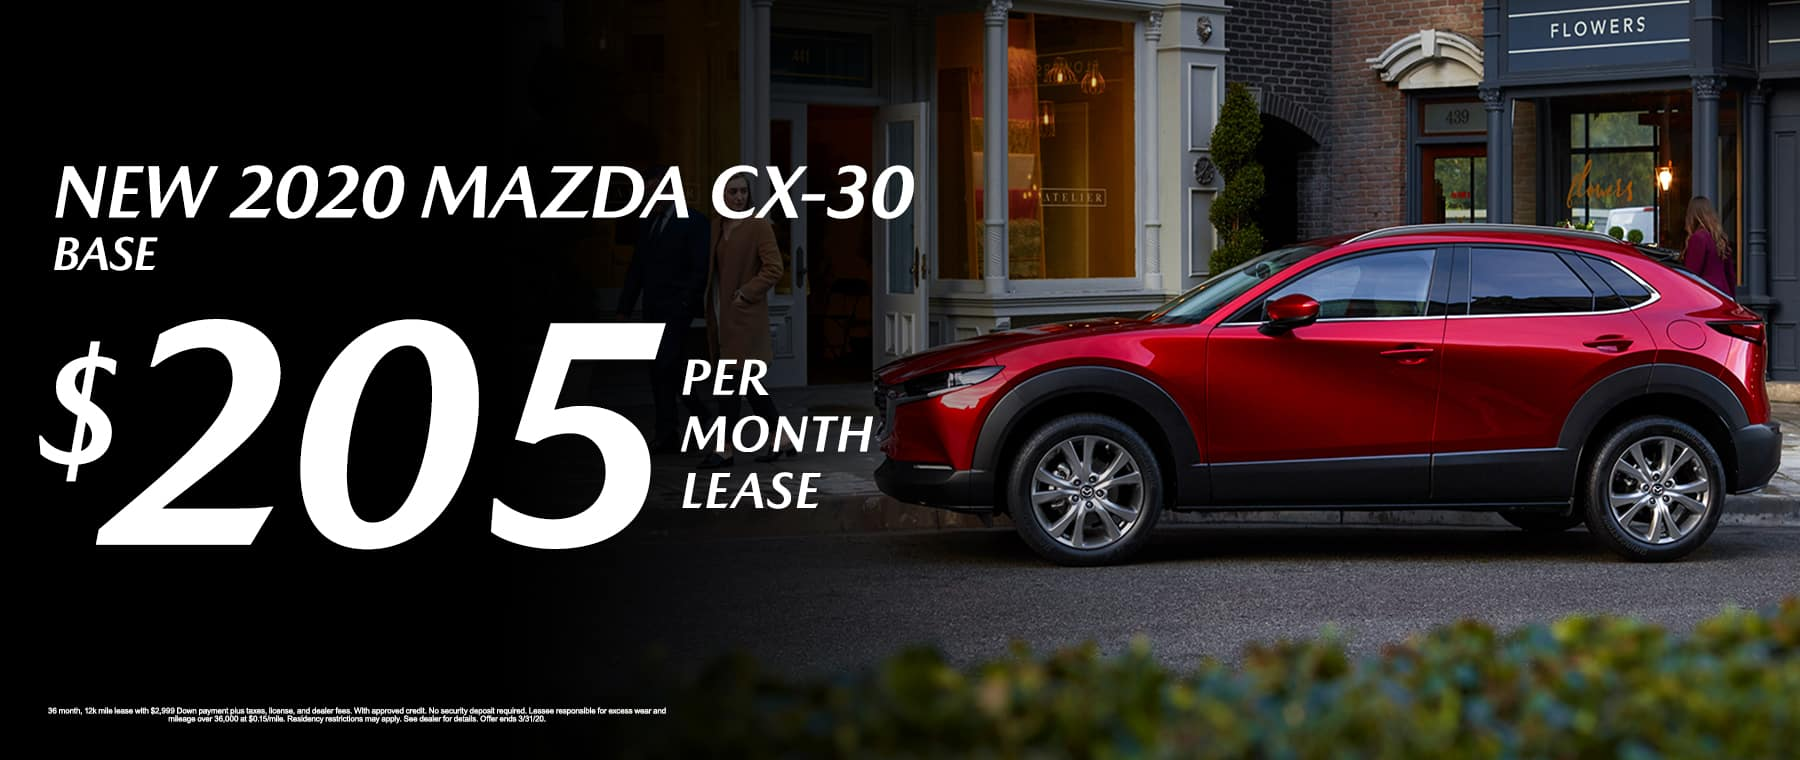 New 2020 Mazda CX-20 Base Lease for $205/mo.